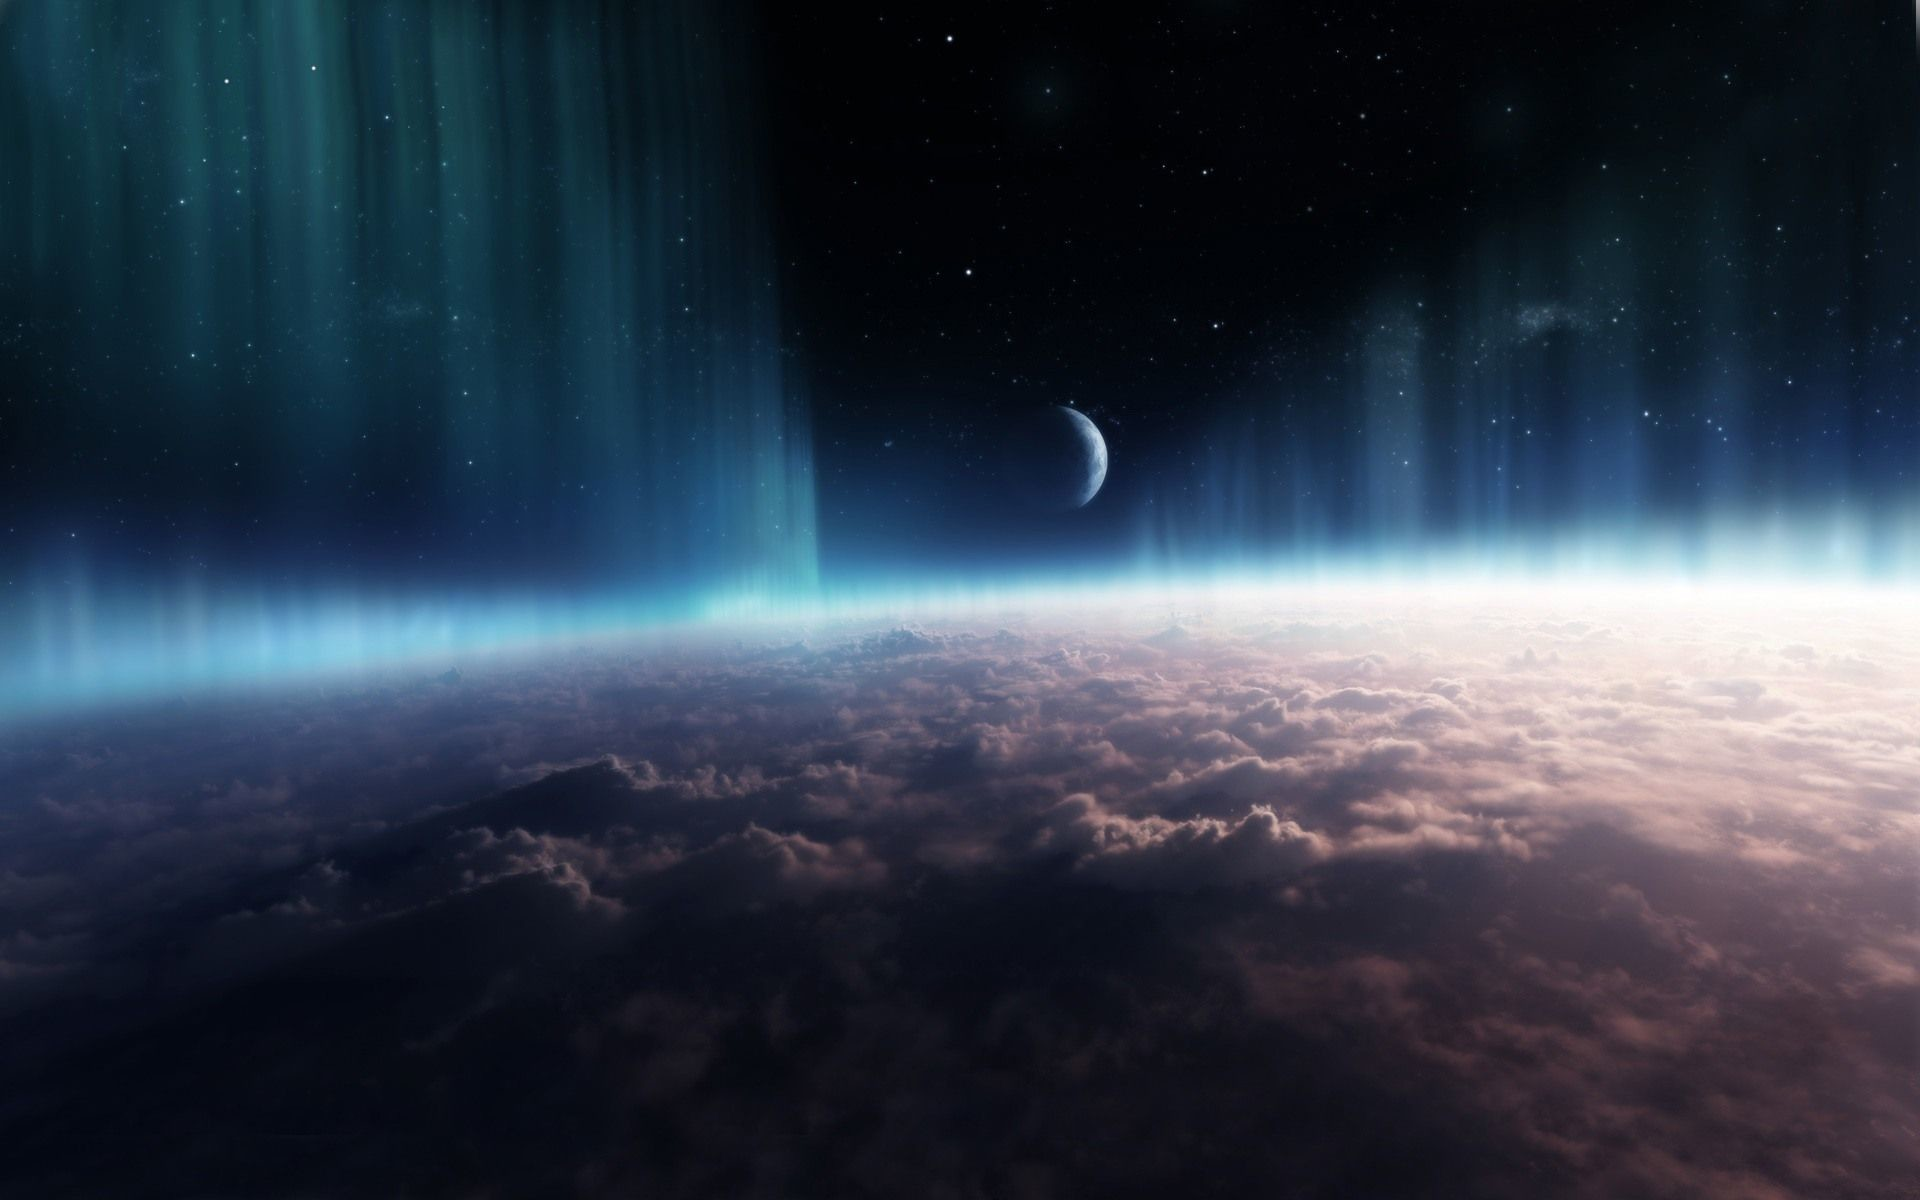 EPIC SPACE BACKGROUNDS – Space Backgrounds